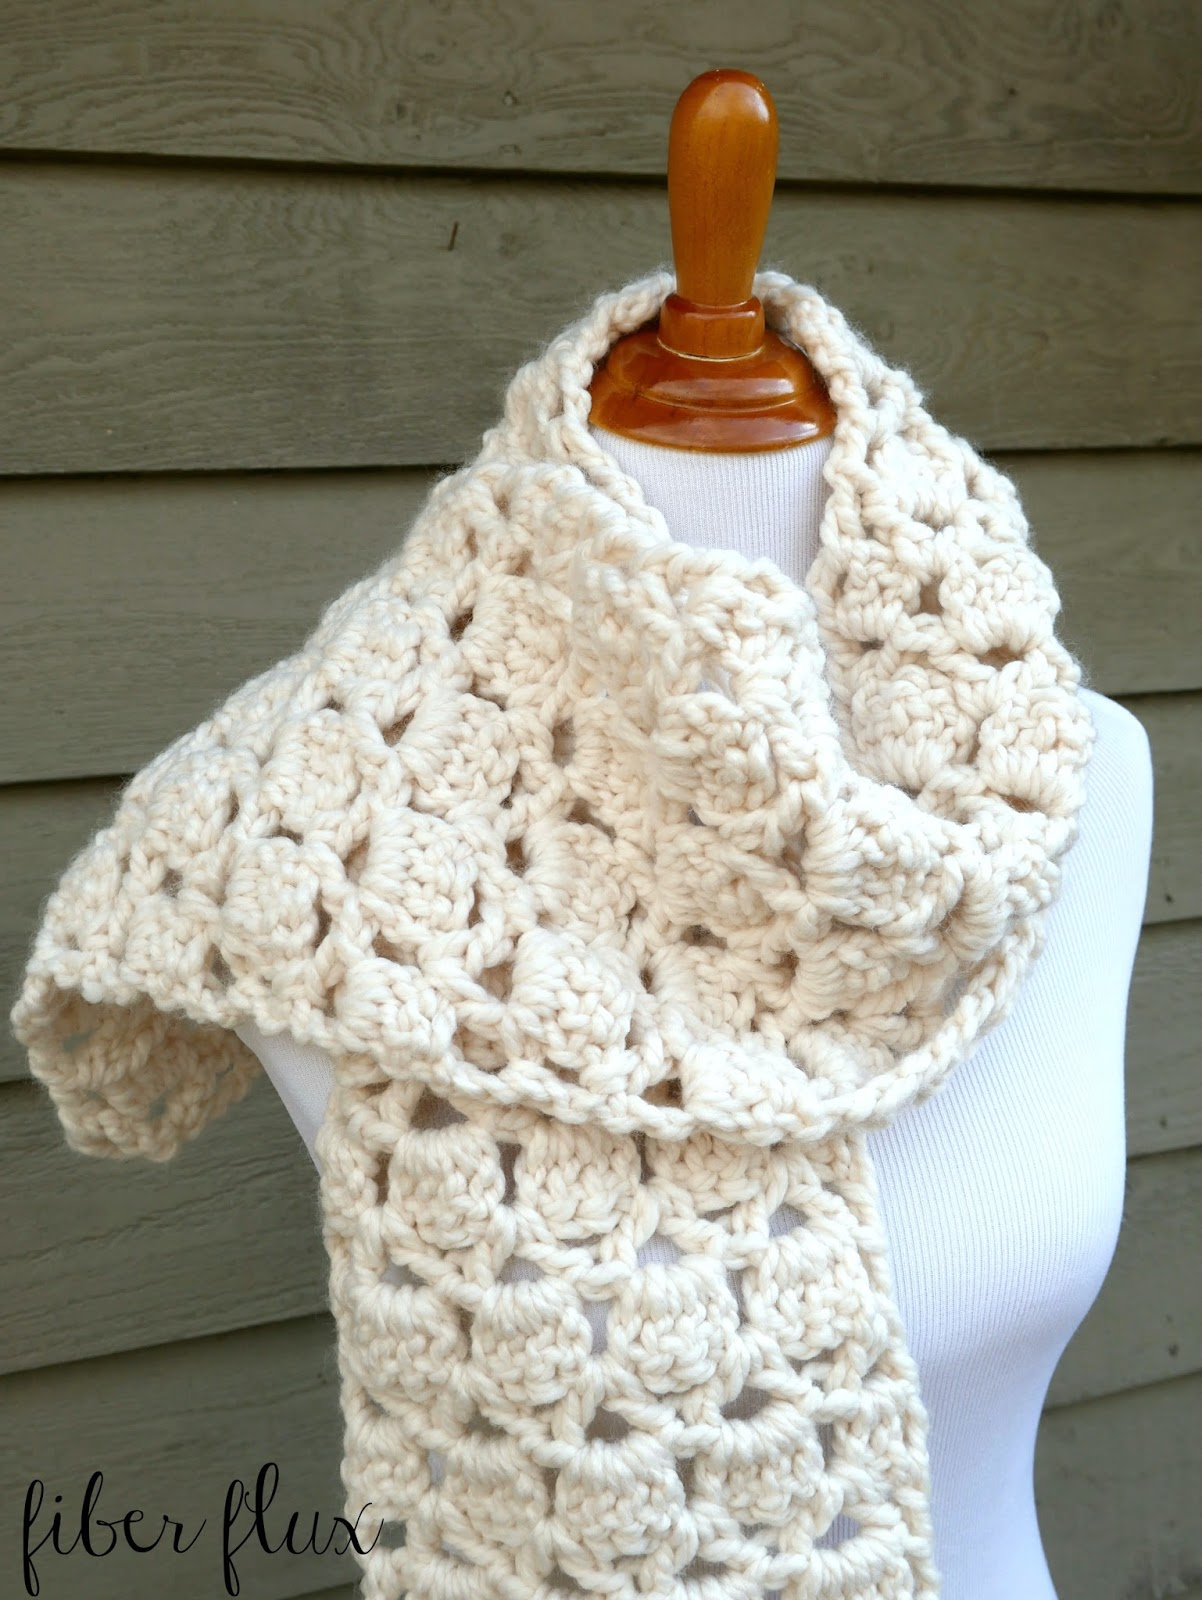 Crochet Shawl Patterns Bulky Yarn : Fiber Flux: Free Crochet Pattern...Sugar Cookie Scarf!